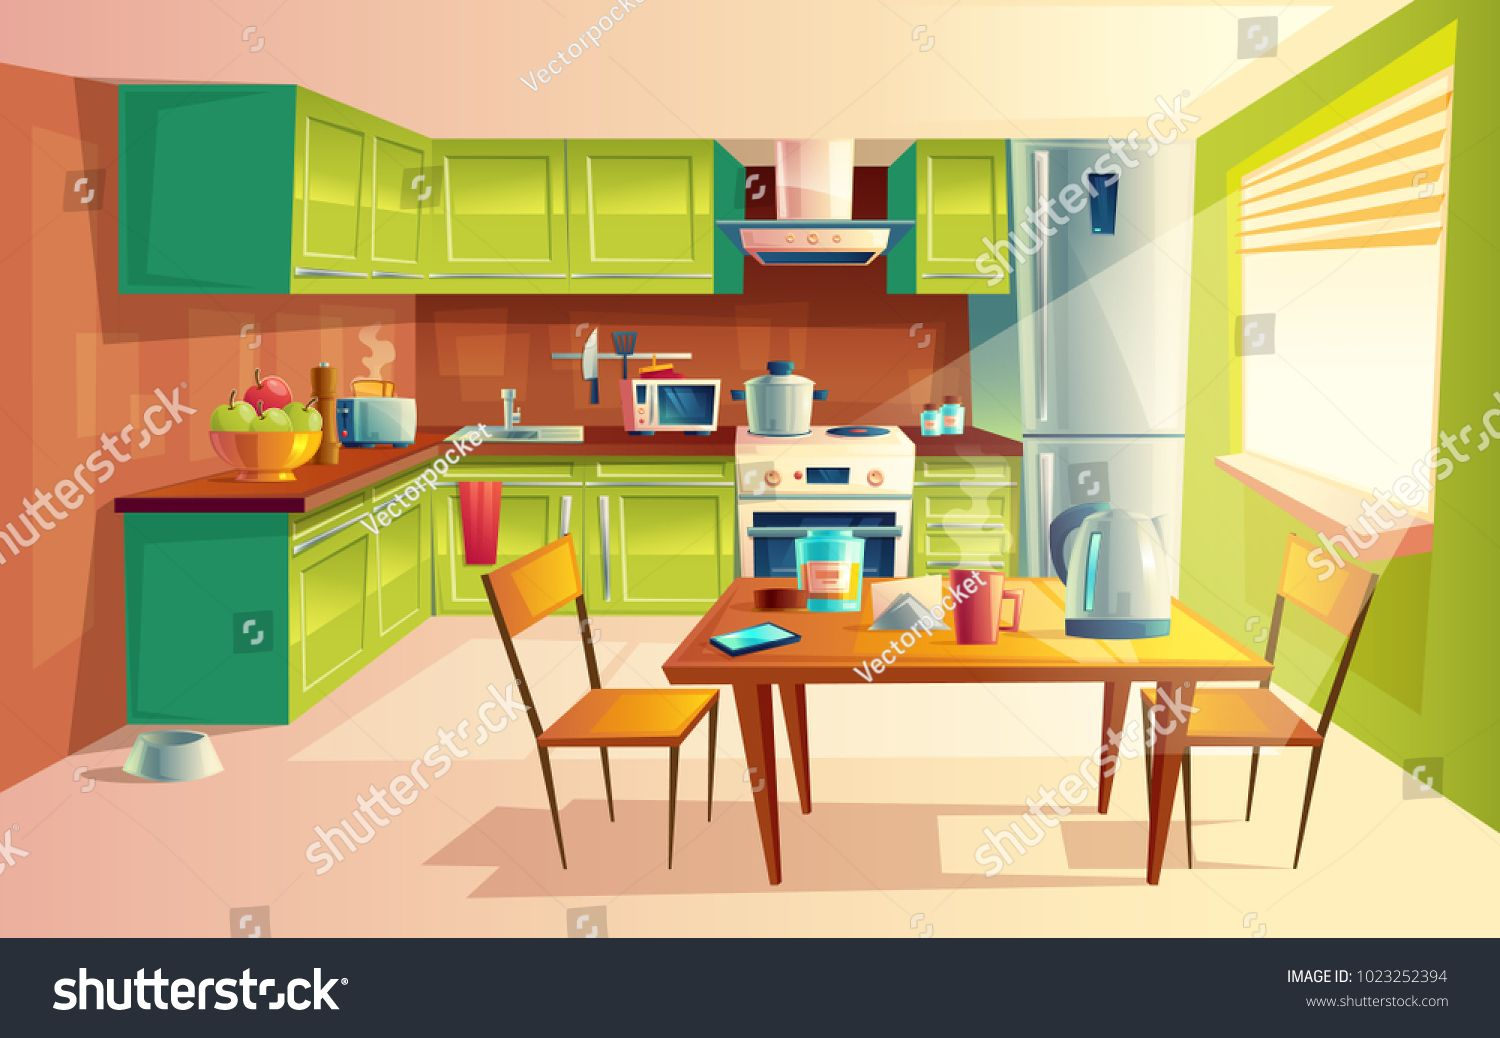 Vector Cartoon Illustration Of Cozy Modern Kitchen With Appliances